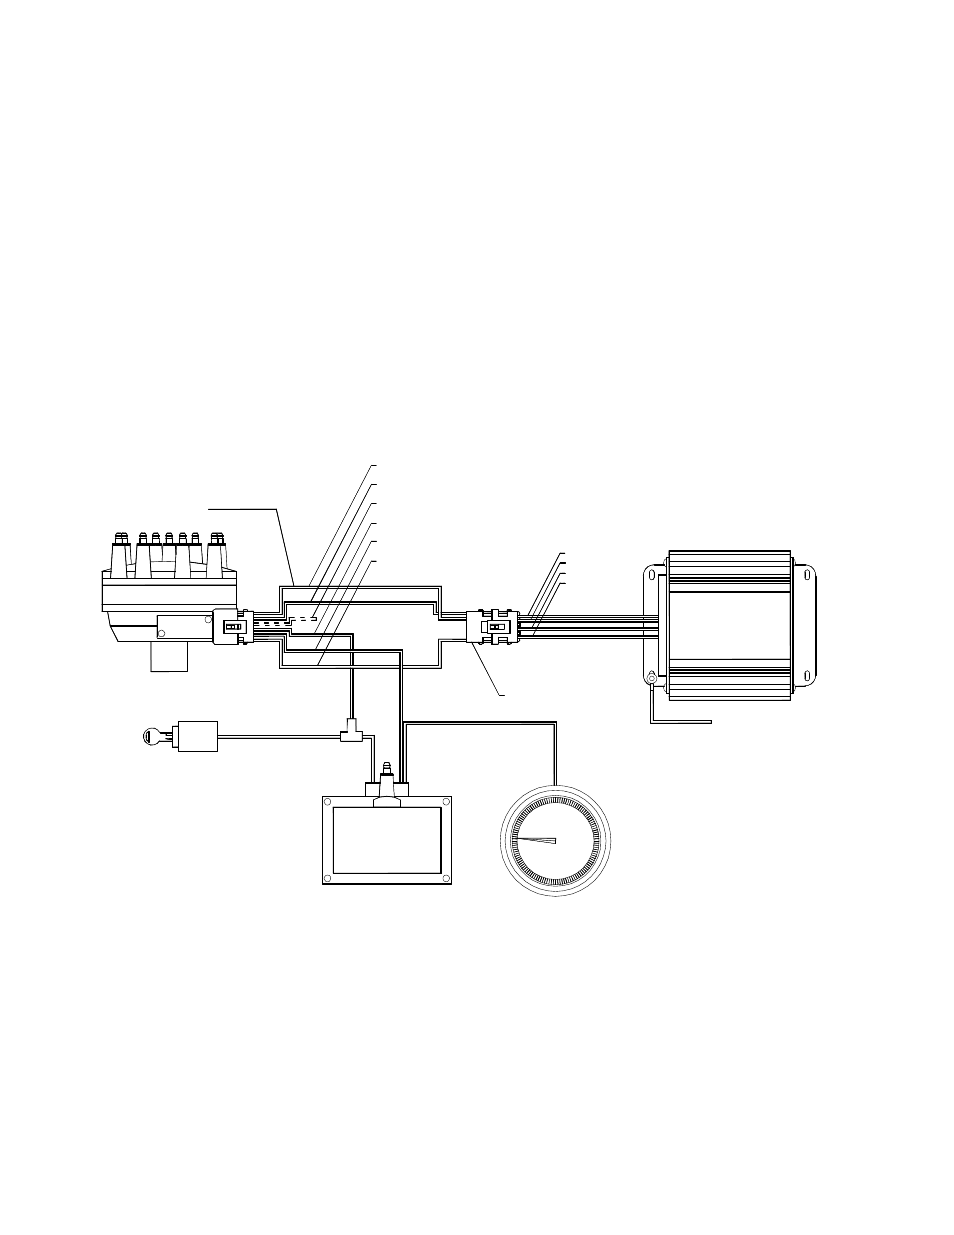 medium resolution of appendix 10 wiring diagrams figure 61 holley commander 950 user manual page 84 98